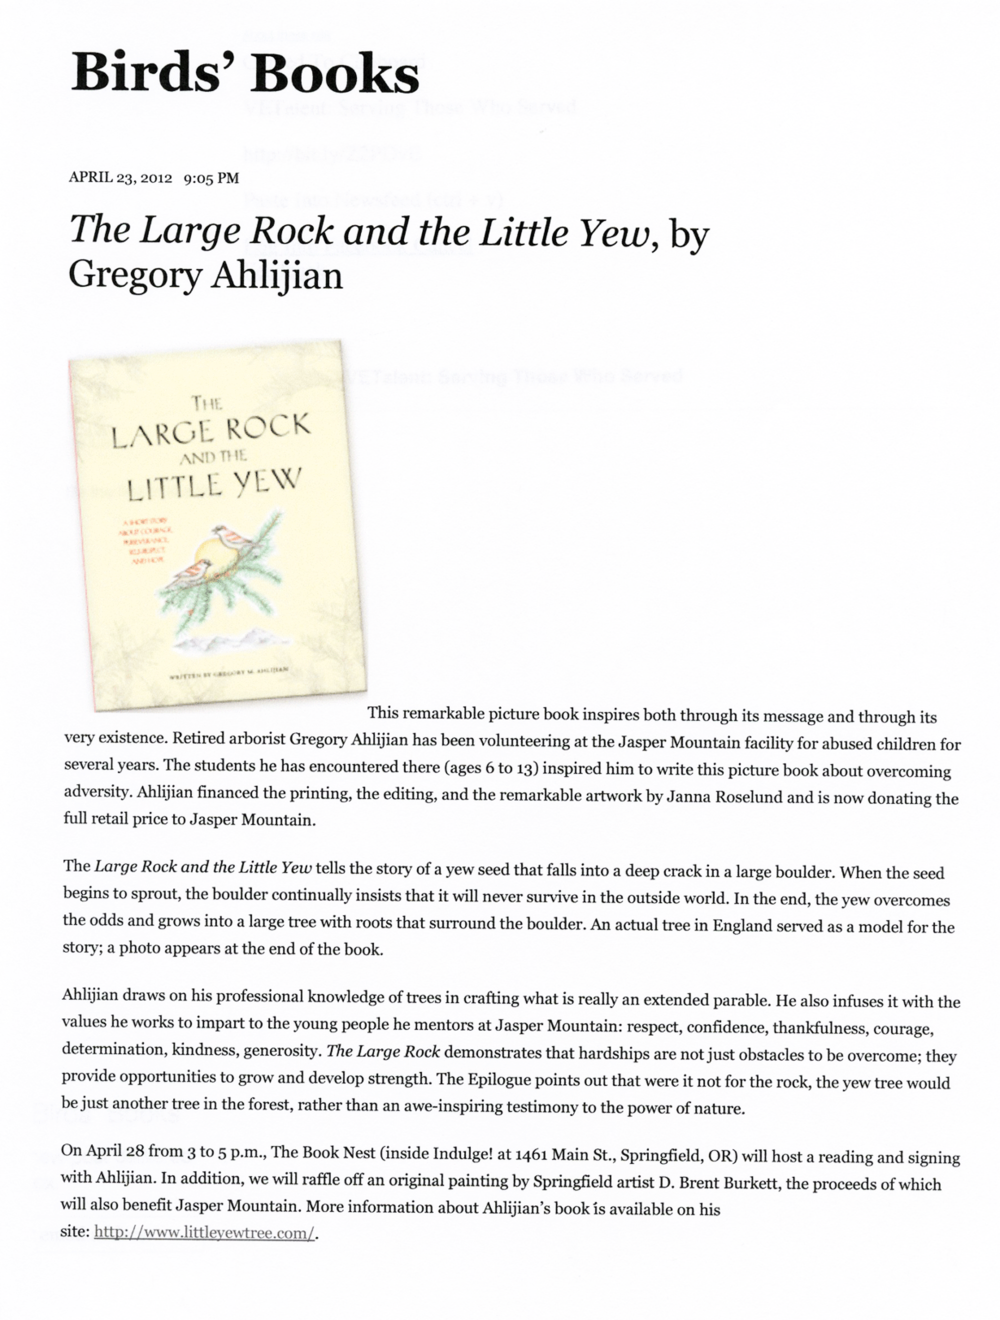 Greg-Ahlijian_Press034_Birds-Books_4-23-12.png